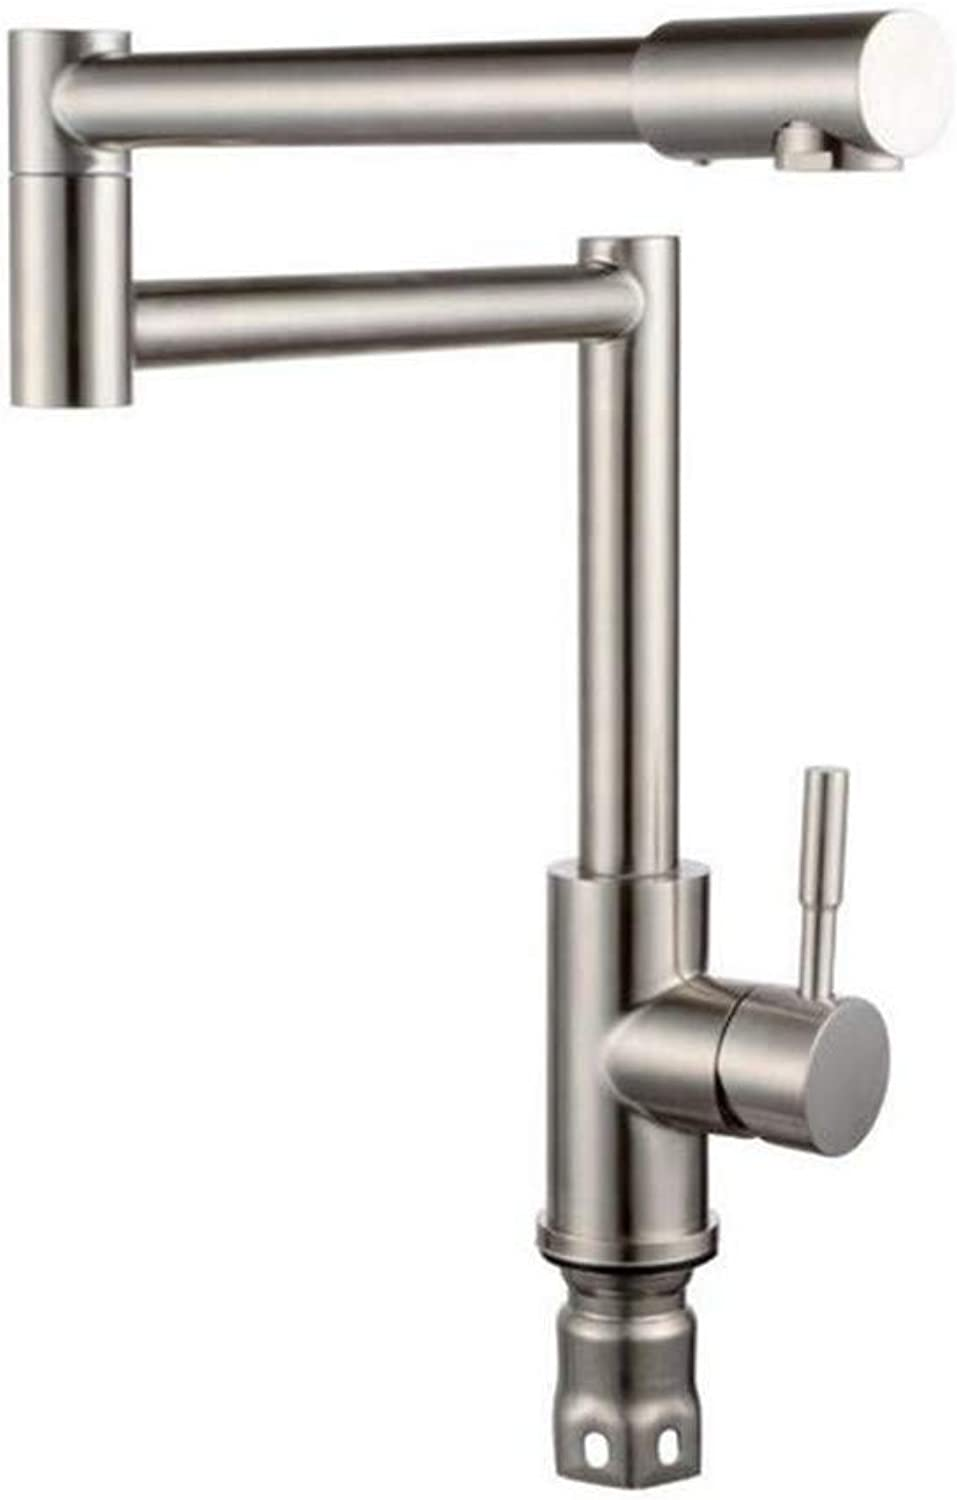 Chrome Kitchen Sink Tapwith Hot and Cold 304 Stainless Steel Fittings for Kitchen Sink Ceramic Disc Valves Sink Tap